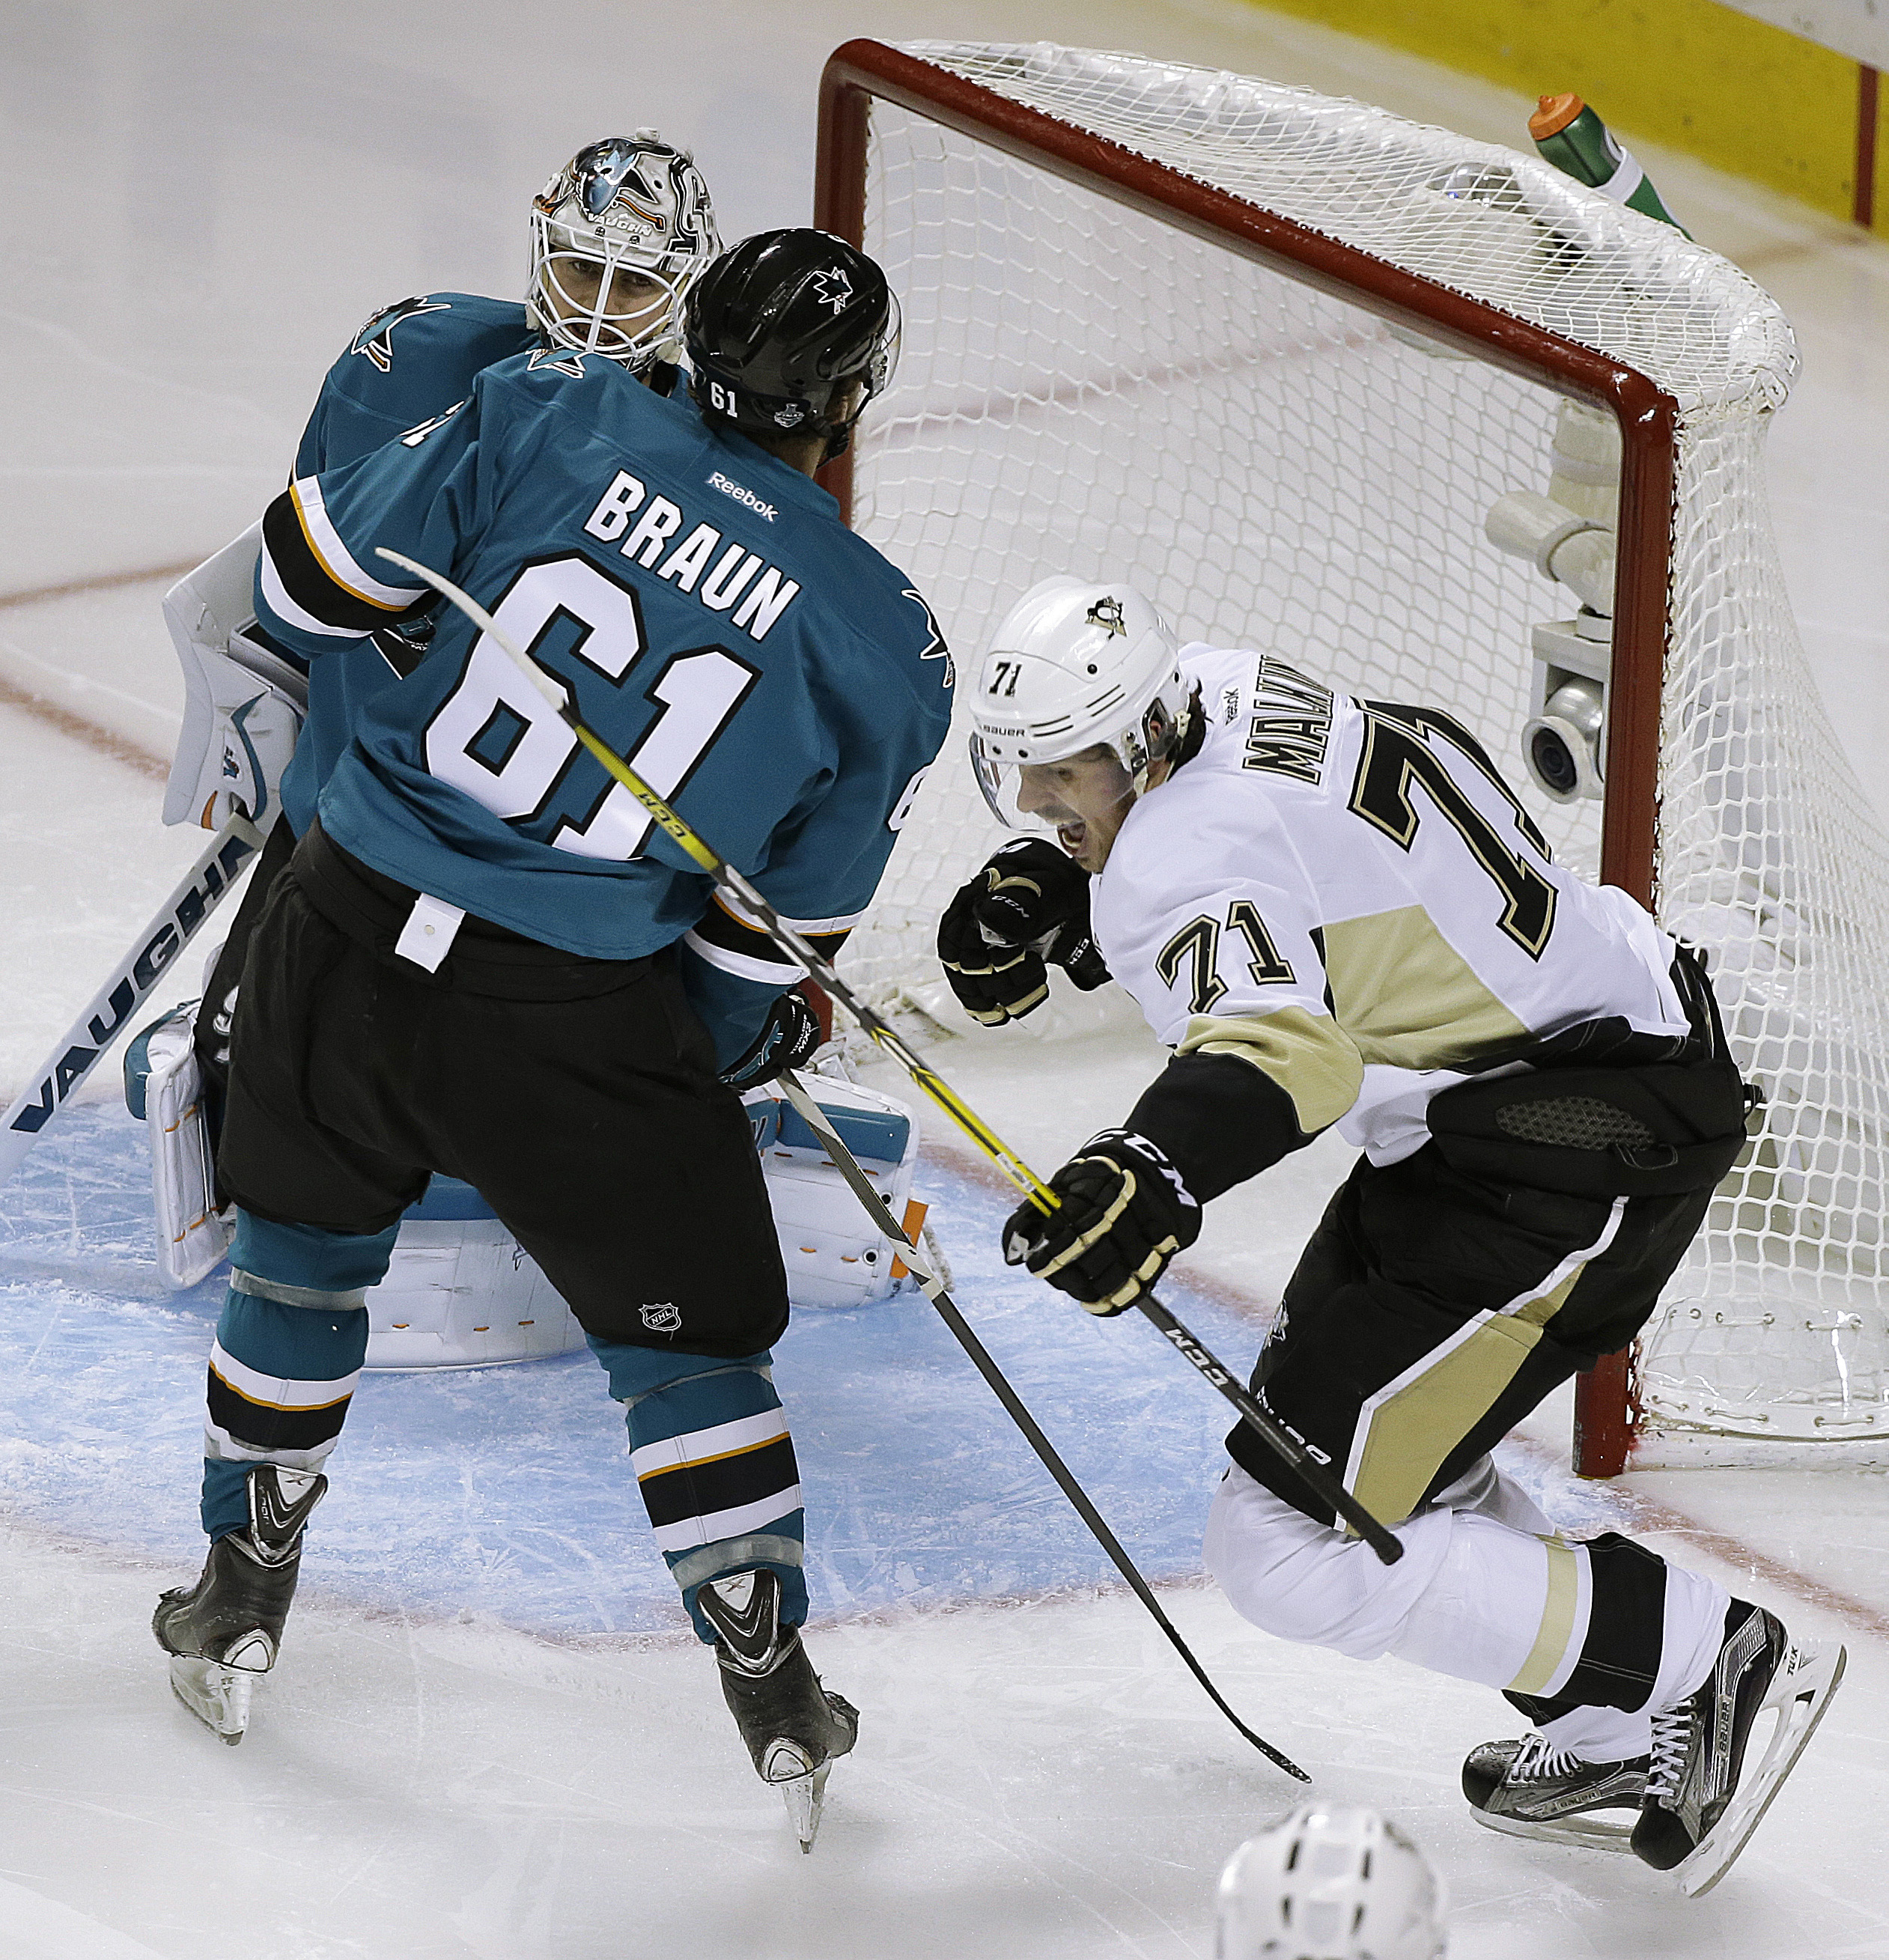 Pittsburgh Penguins' Evgeni Malkin, right, celebrates after scoring a goal against San Jose Sharks goalie Martin Jones and Justin Braun (61) during the second period of Game 4 of the NHL hockey Stanley Cup Finals on Monday, June 6, 2016, in San Jose, Cali